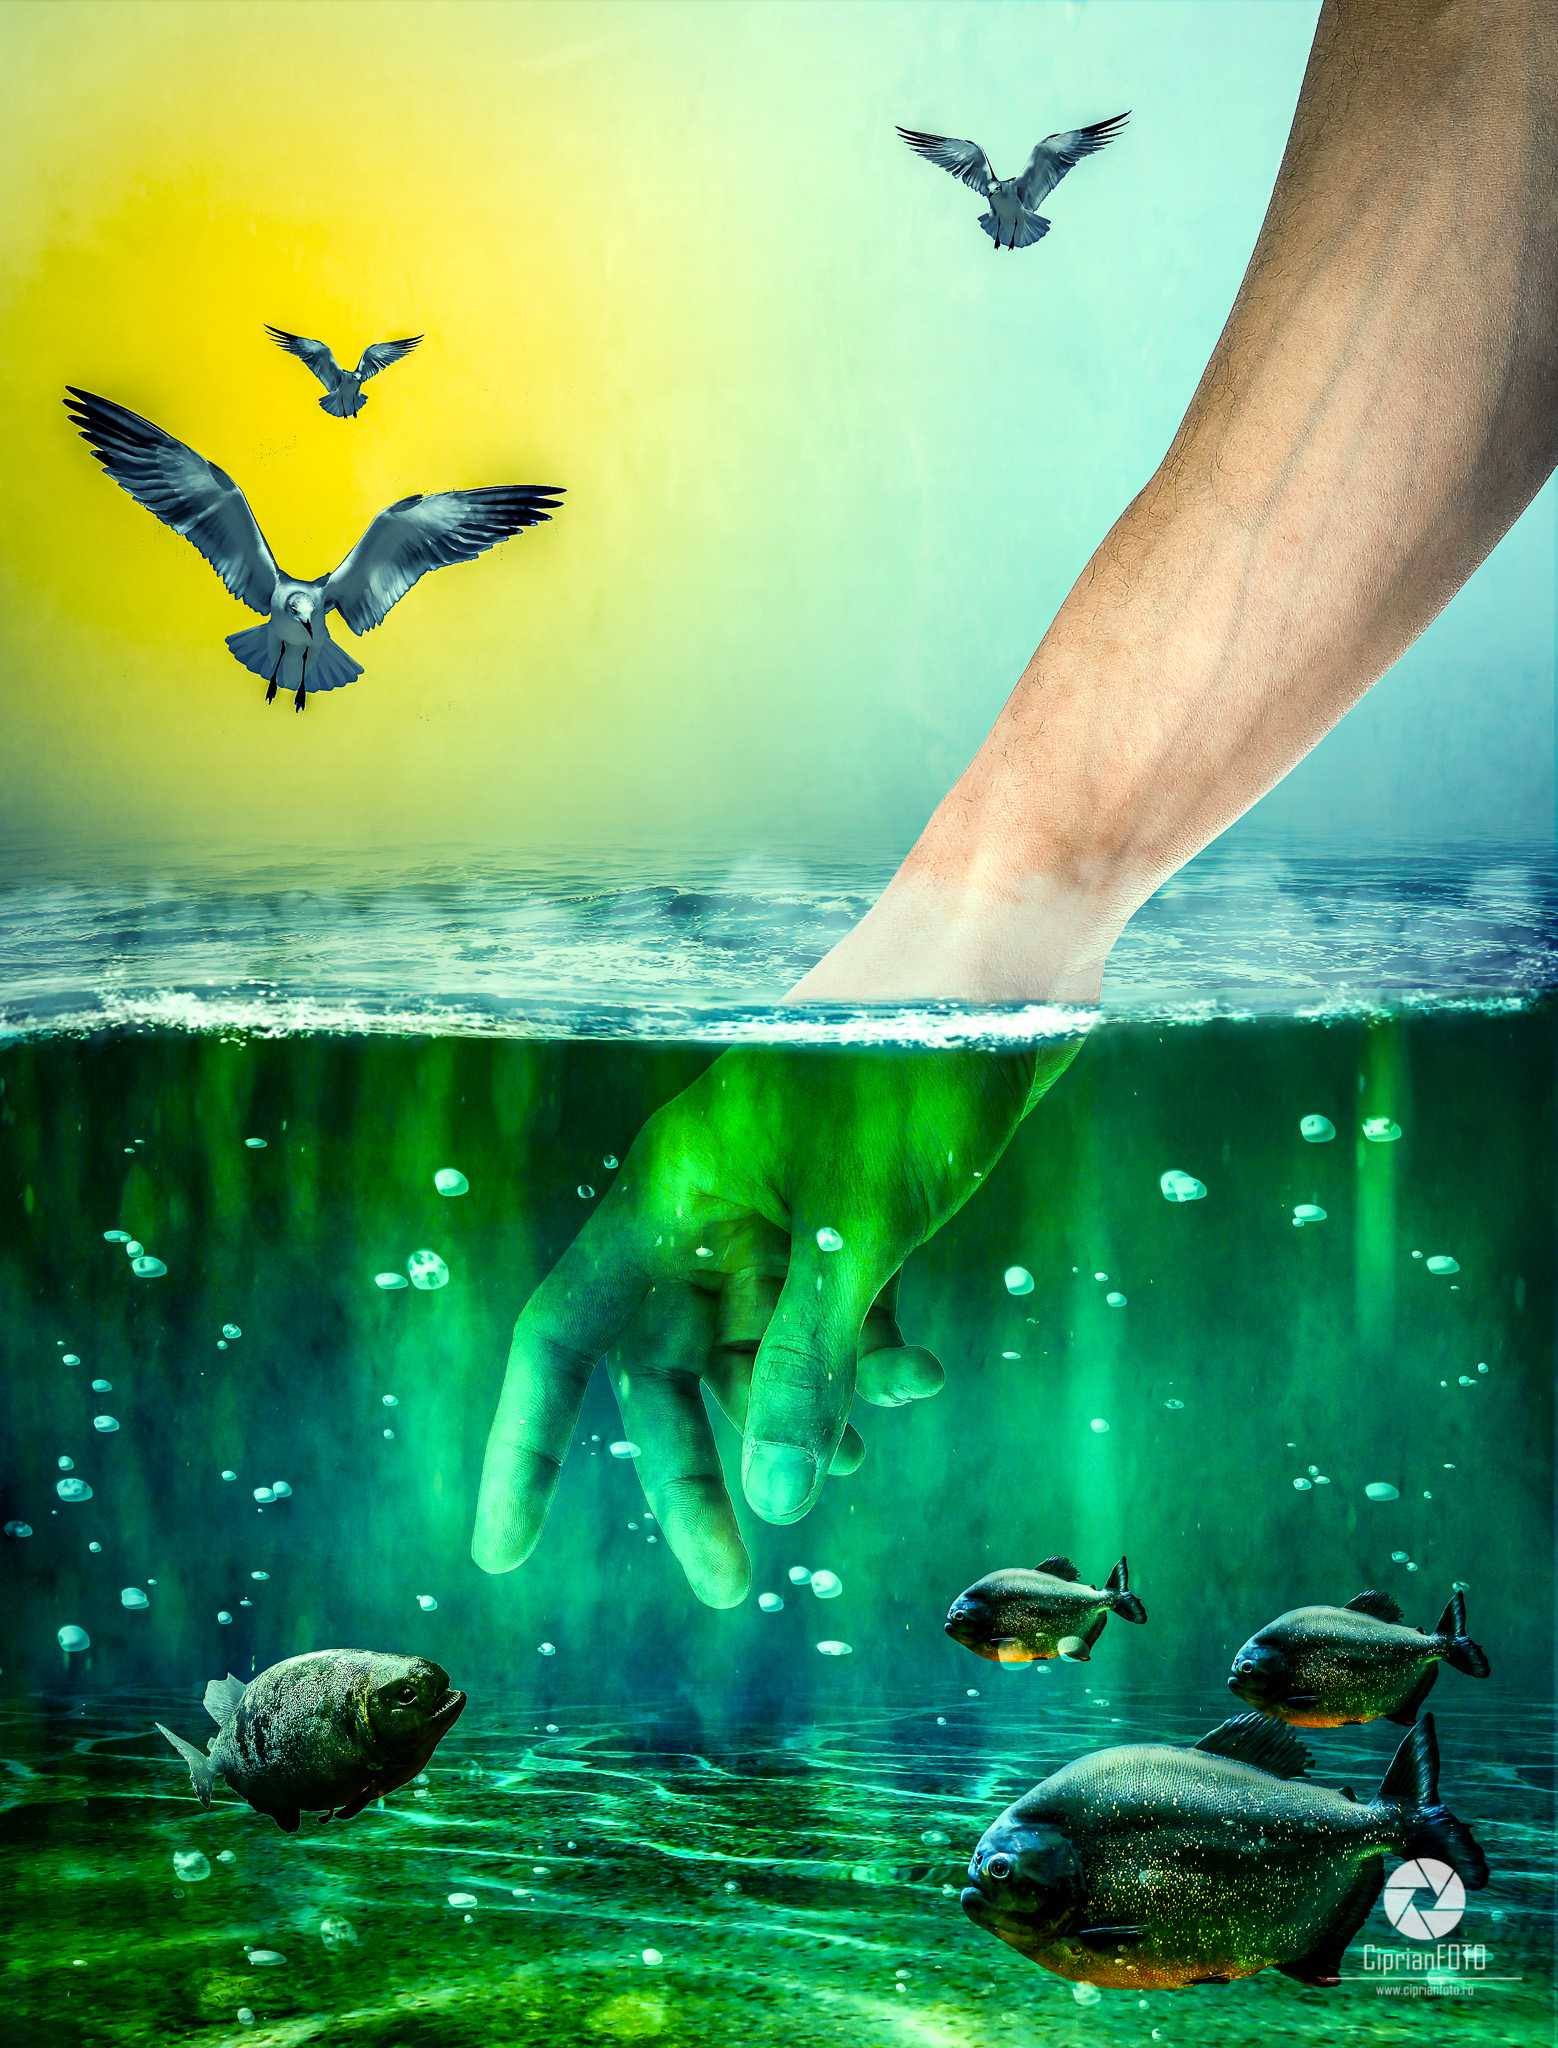 The Hand That Tames Piranha, Photoshop Manipulation Tutorial, CiprianFOTO